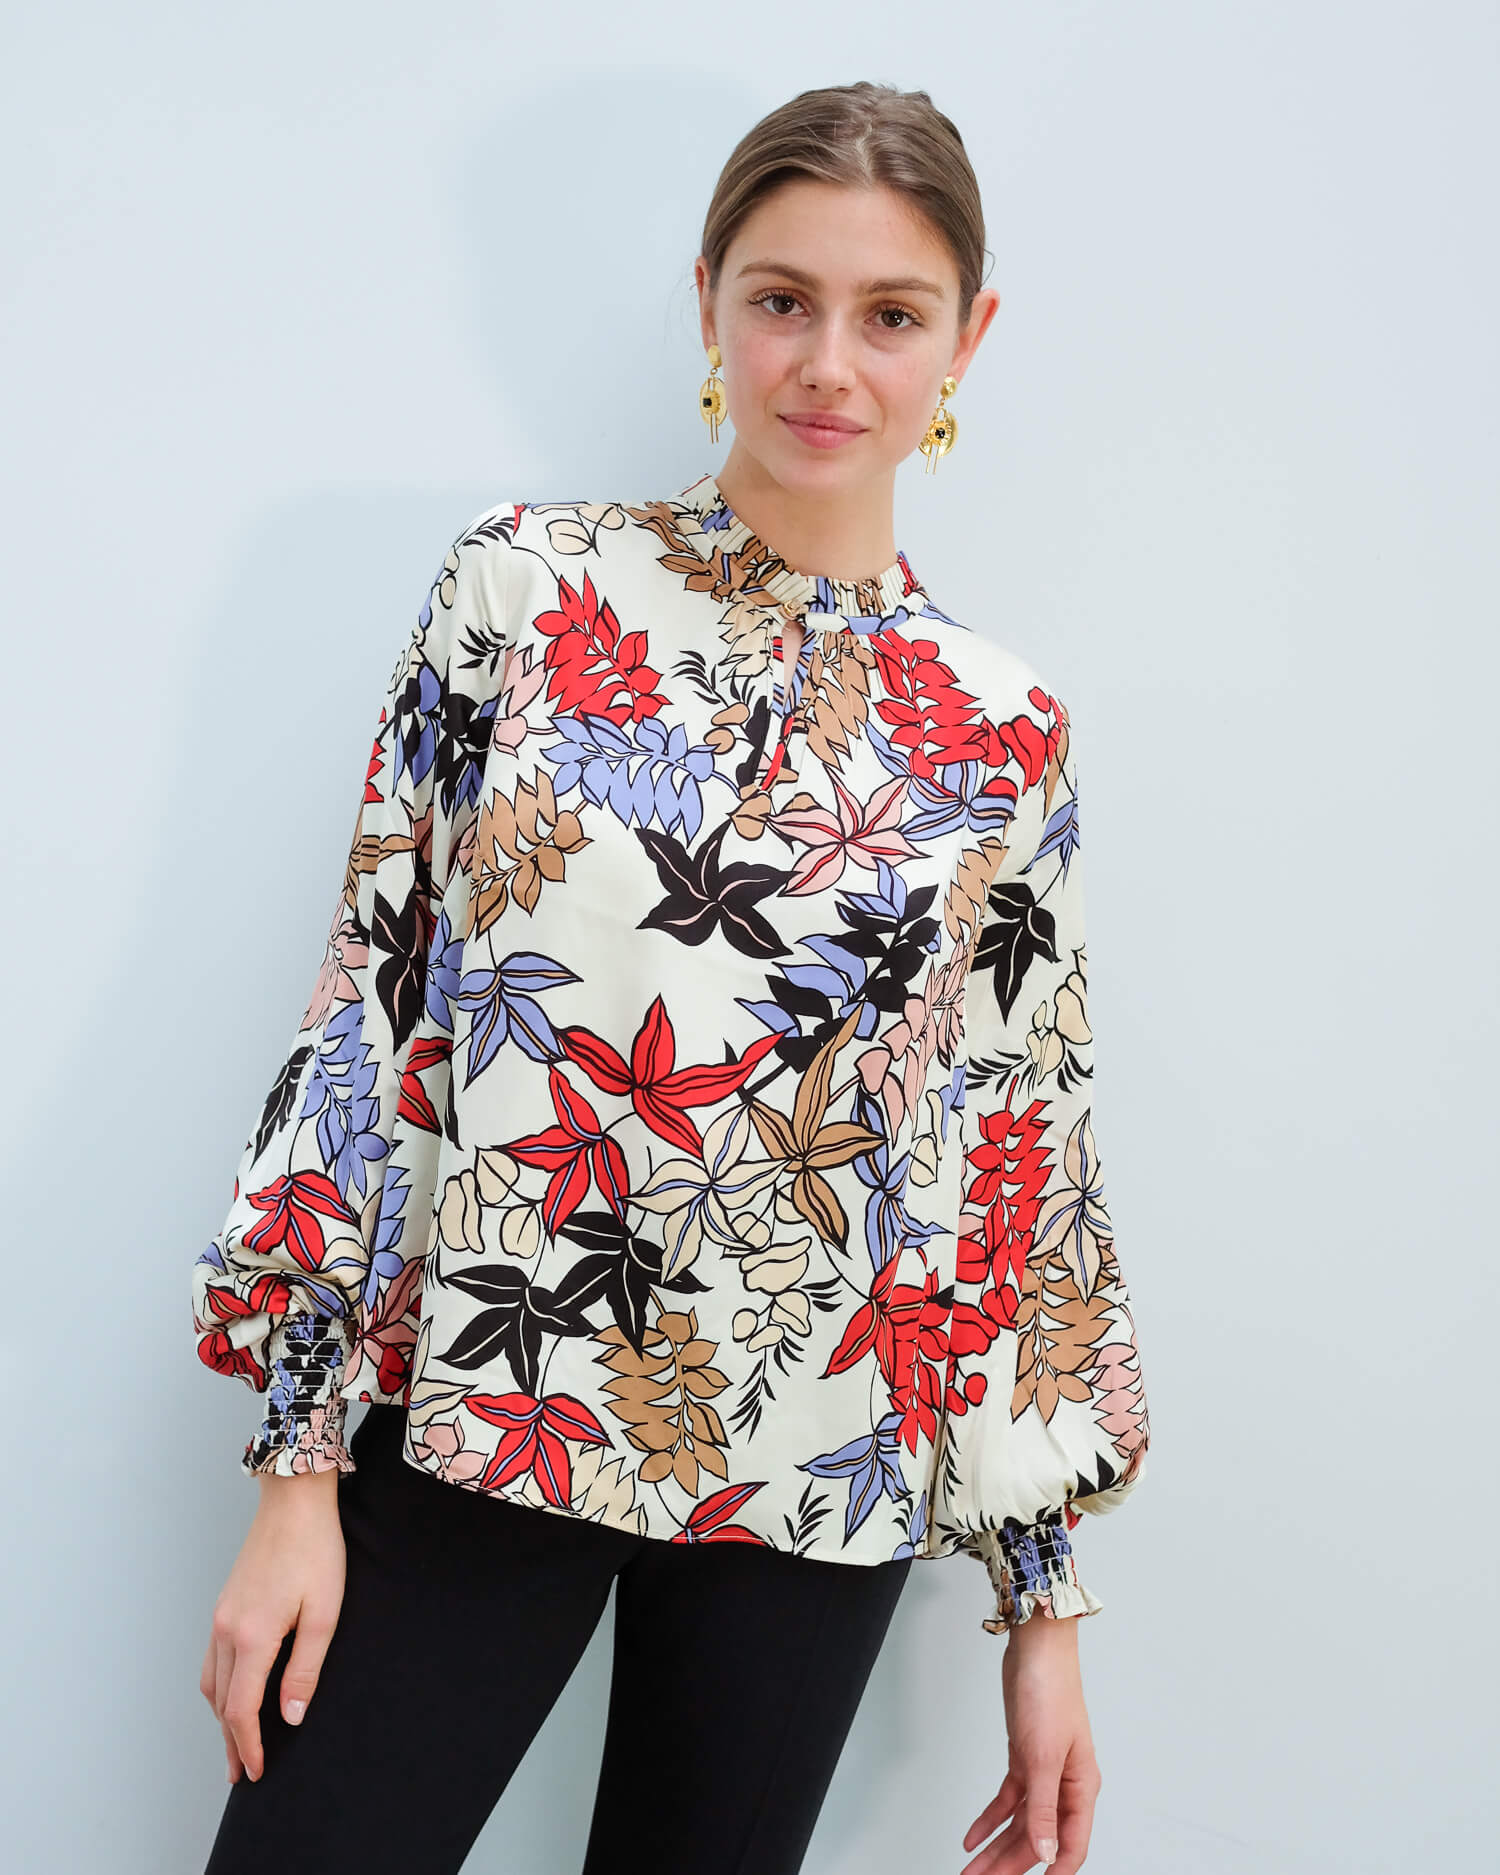 M Jessa floral top in ivory